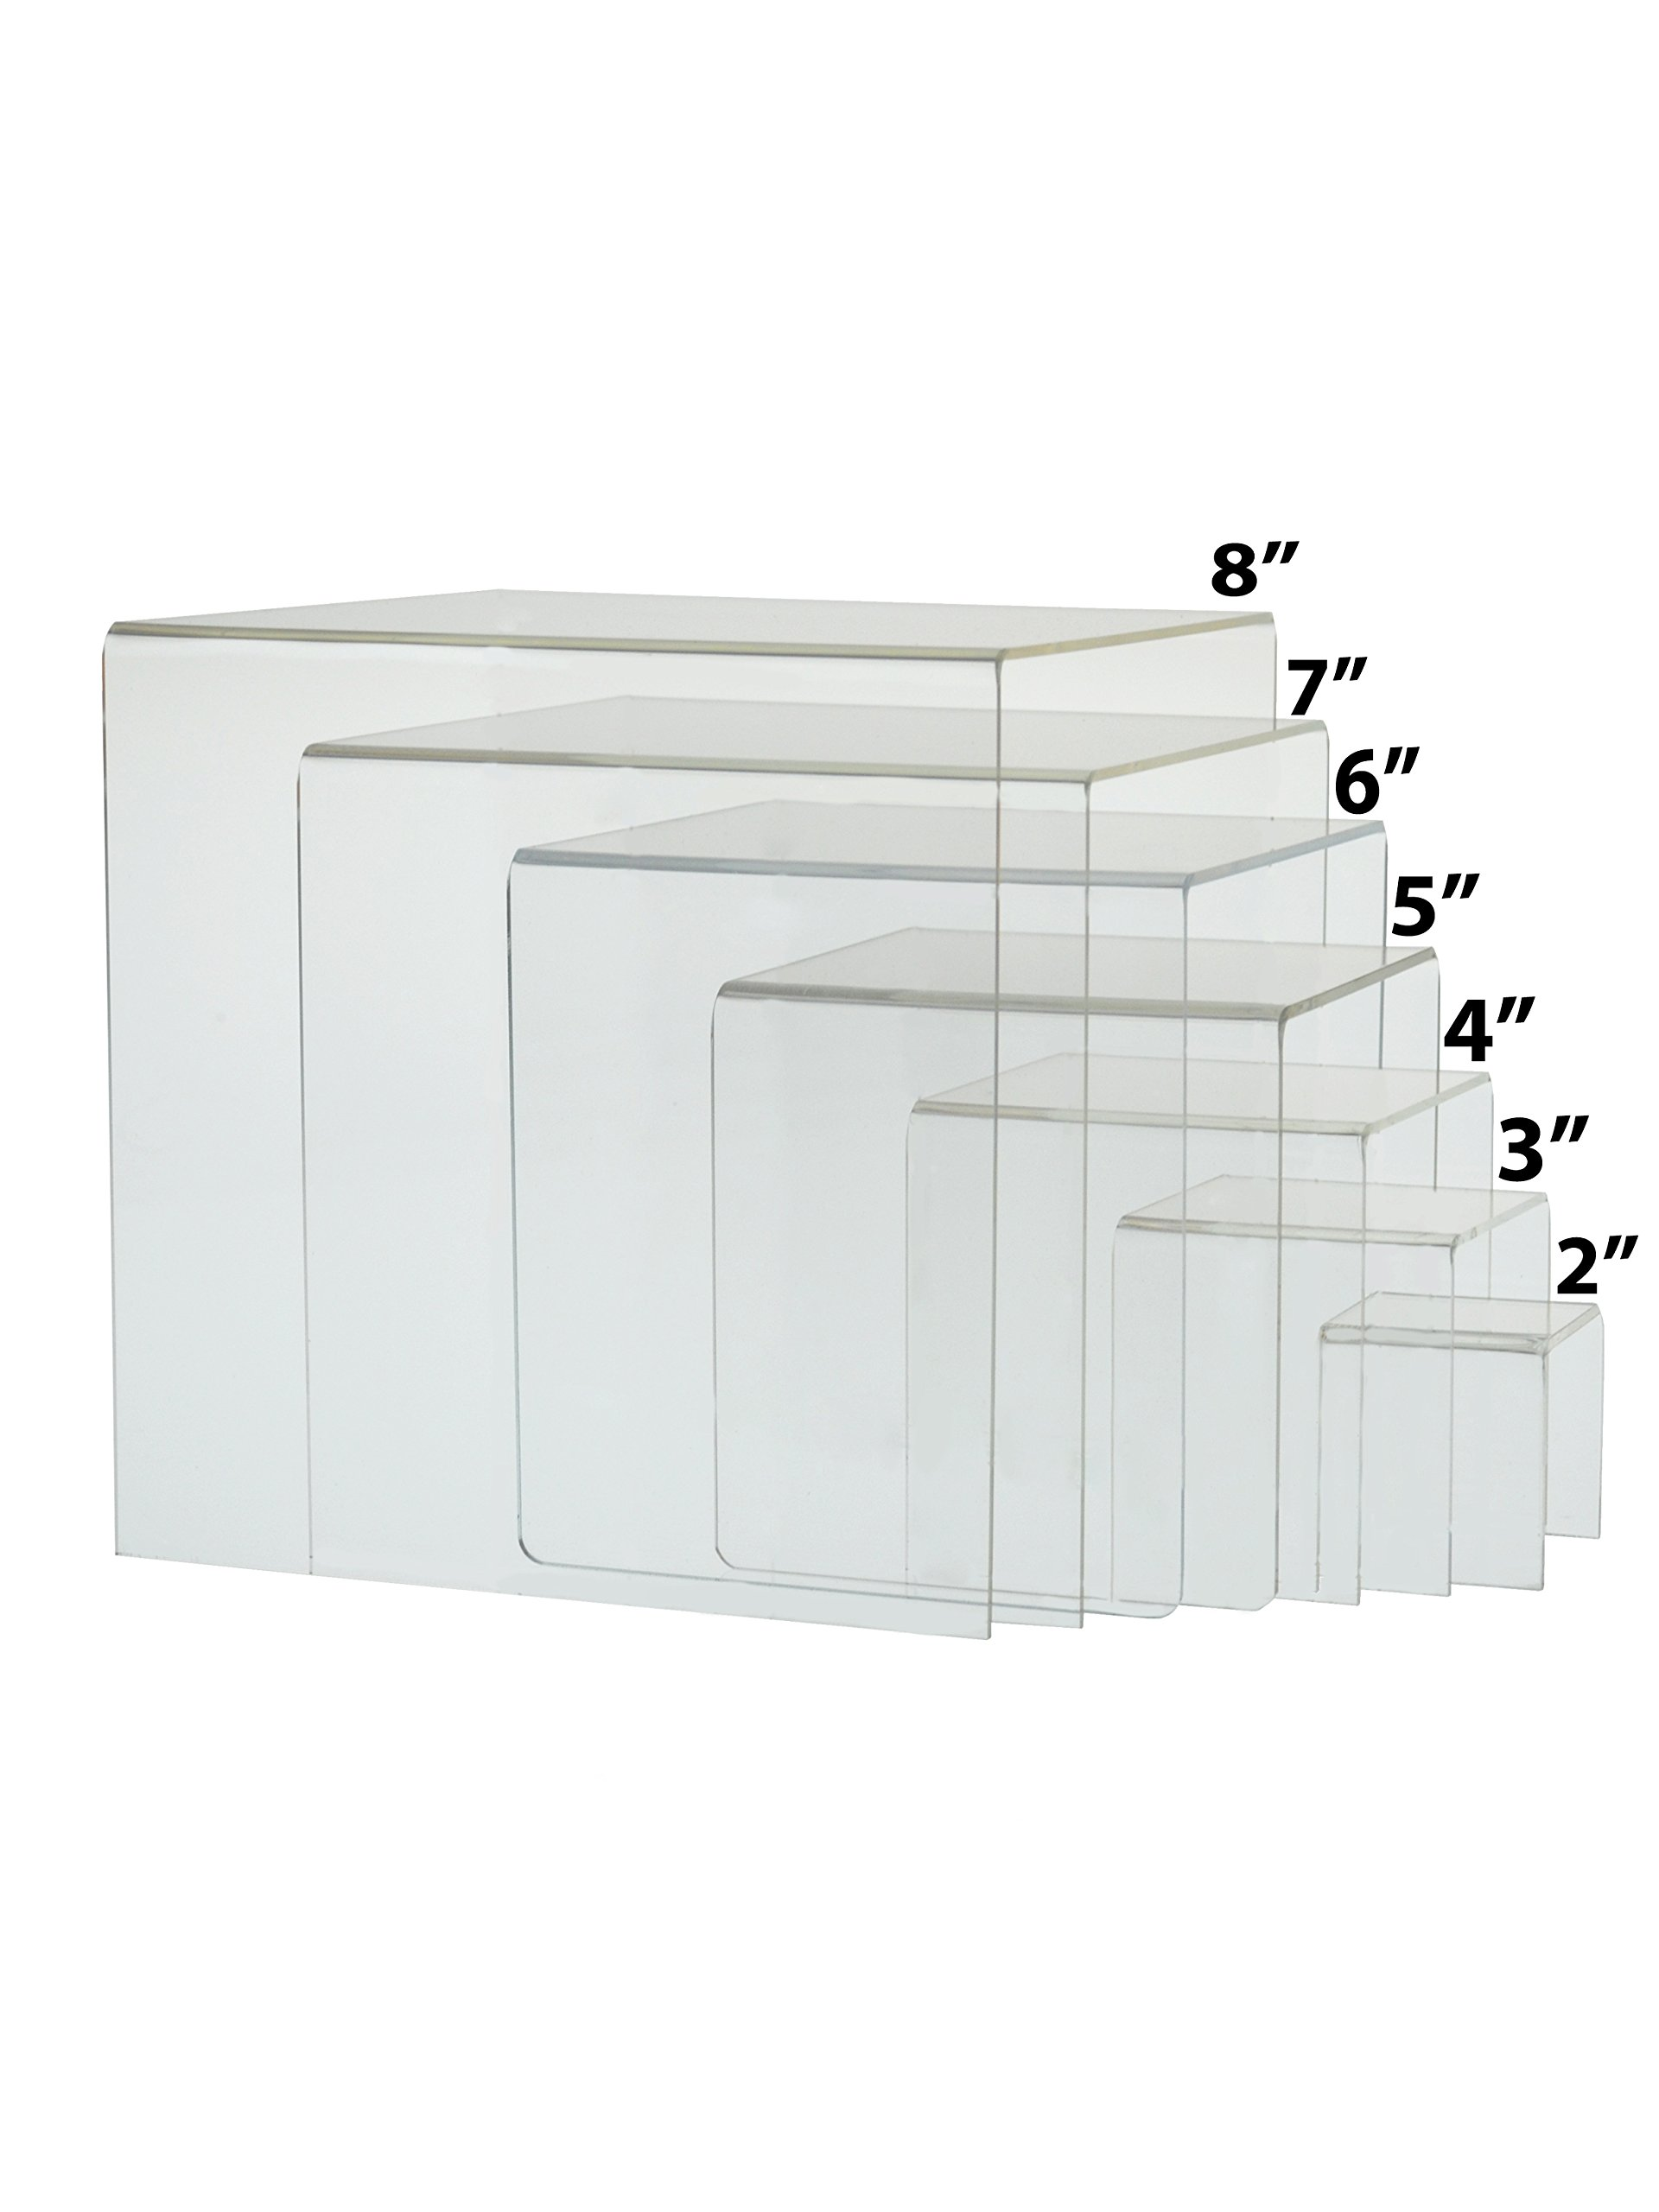 Marketing Holders Lot of 4 Cube Counter Top Riser Full Set of 7